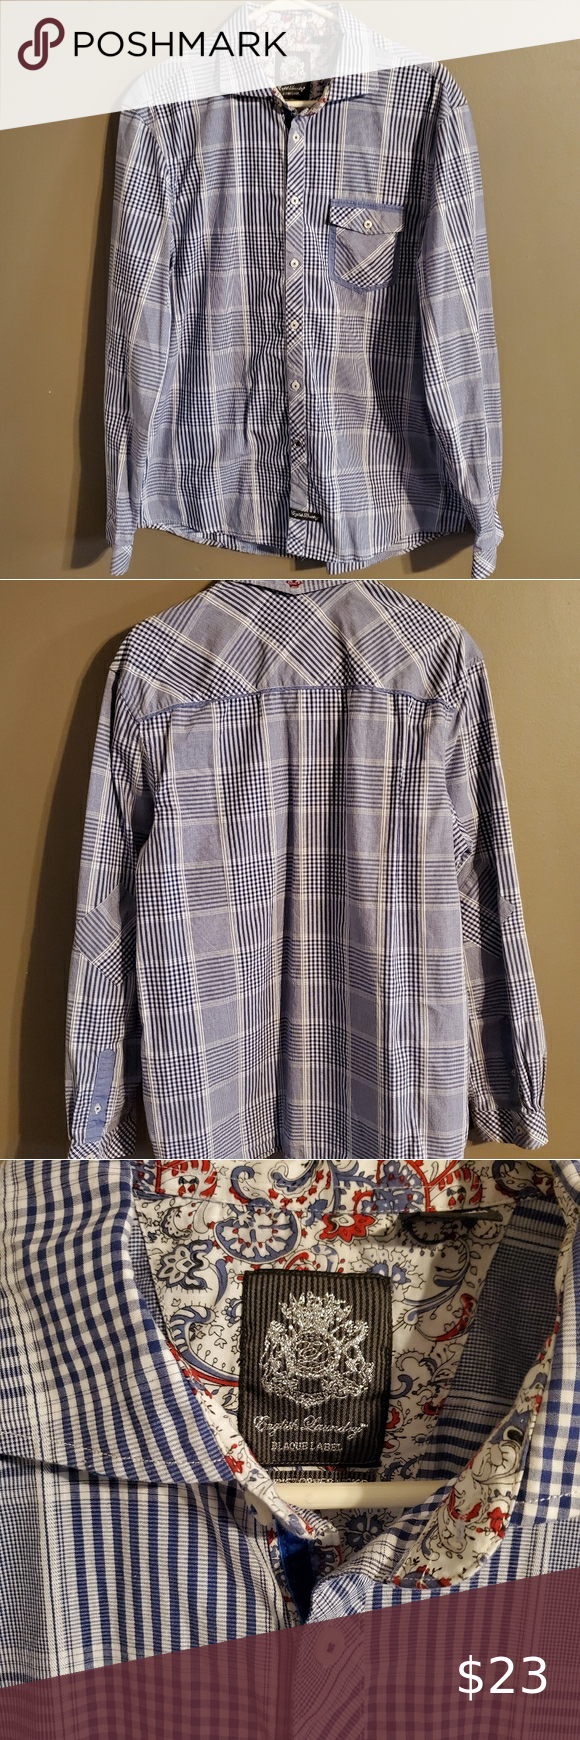 English Laundry Blaque Label Button Up Patterned Button Up Shirts Shirt Dress Casual Laundry Shirts [ 1740 x 580 Pixel ]